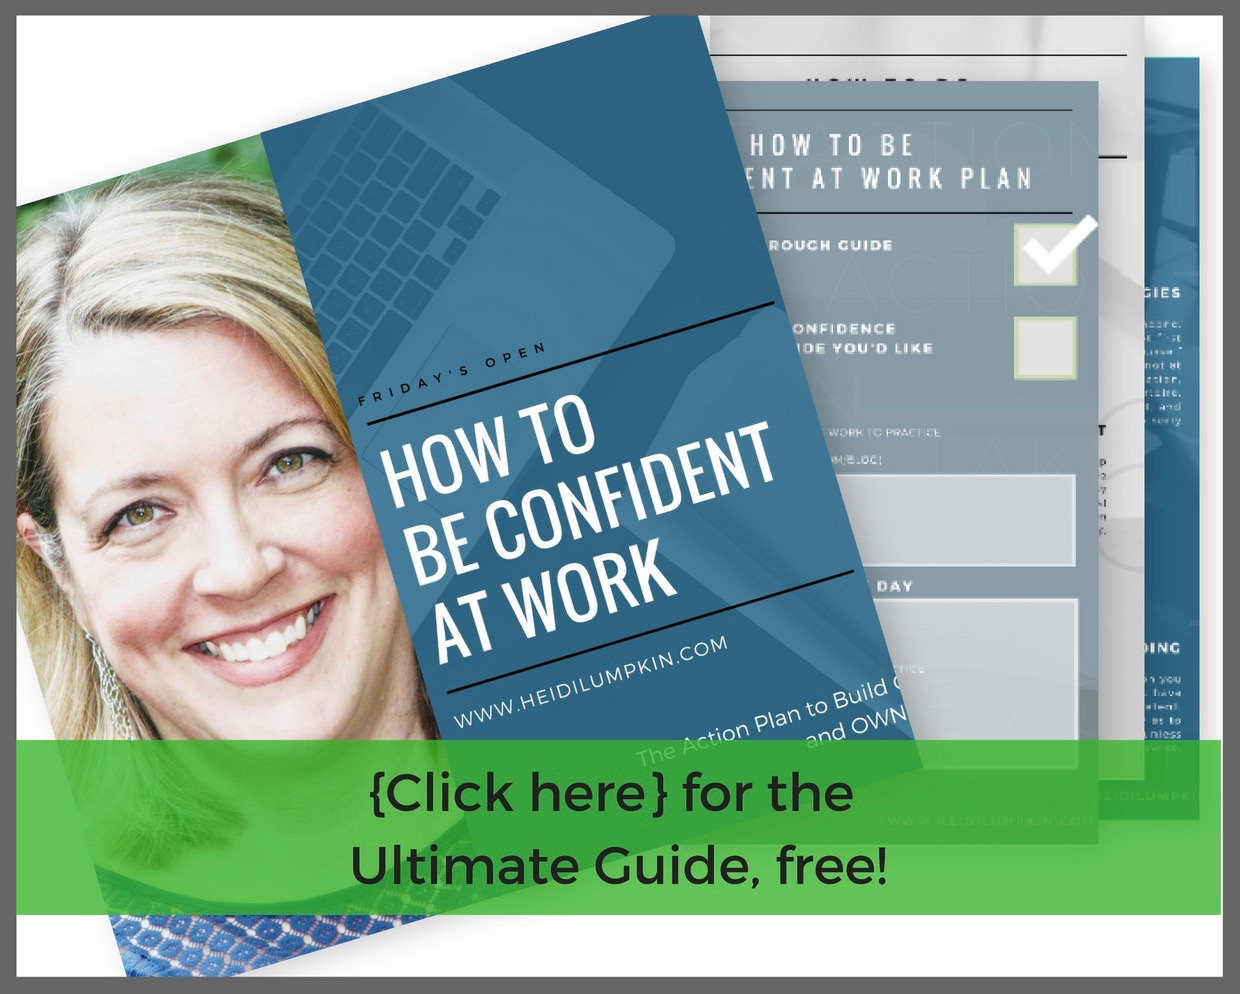 How to Be Confident at Work